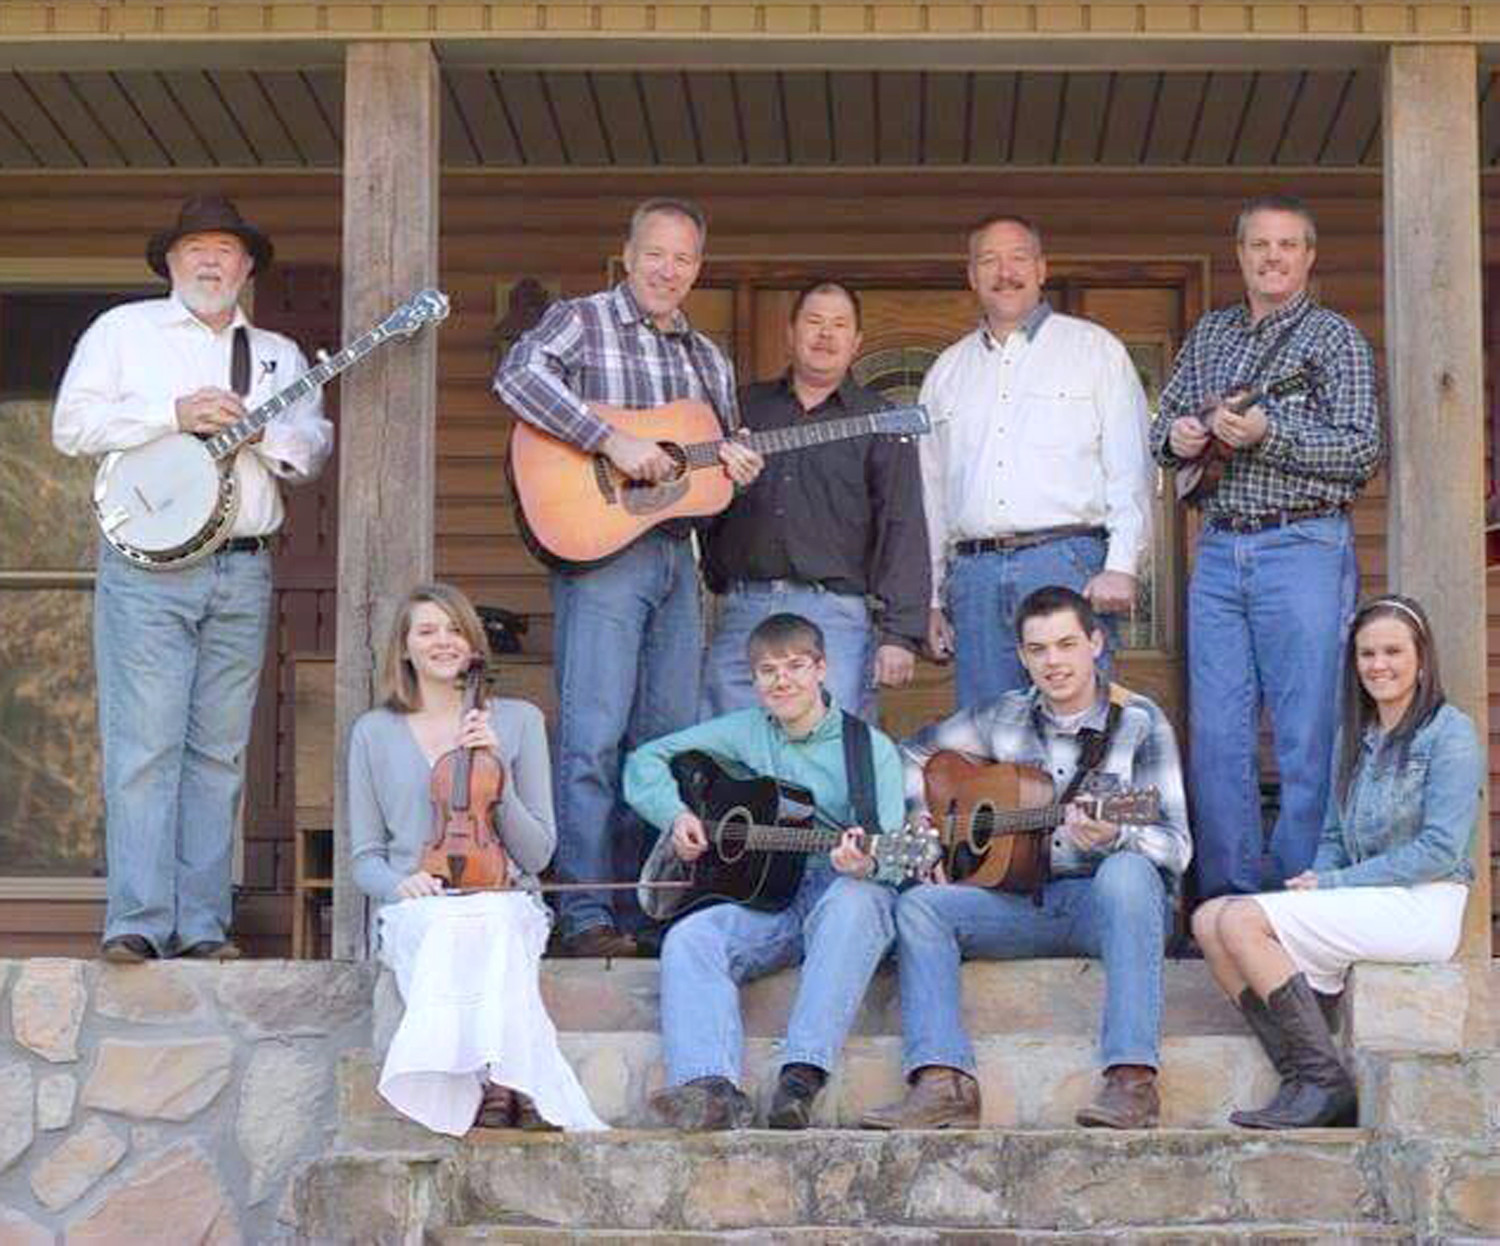 By the Way Bluegrass Band